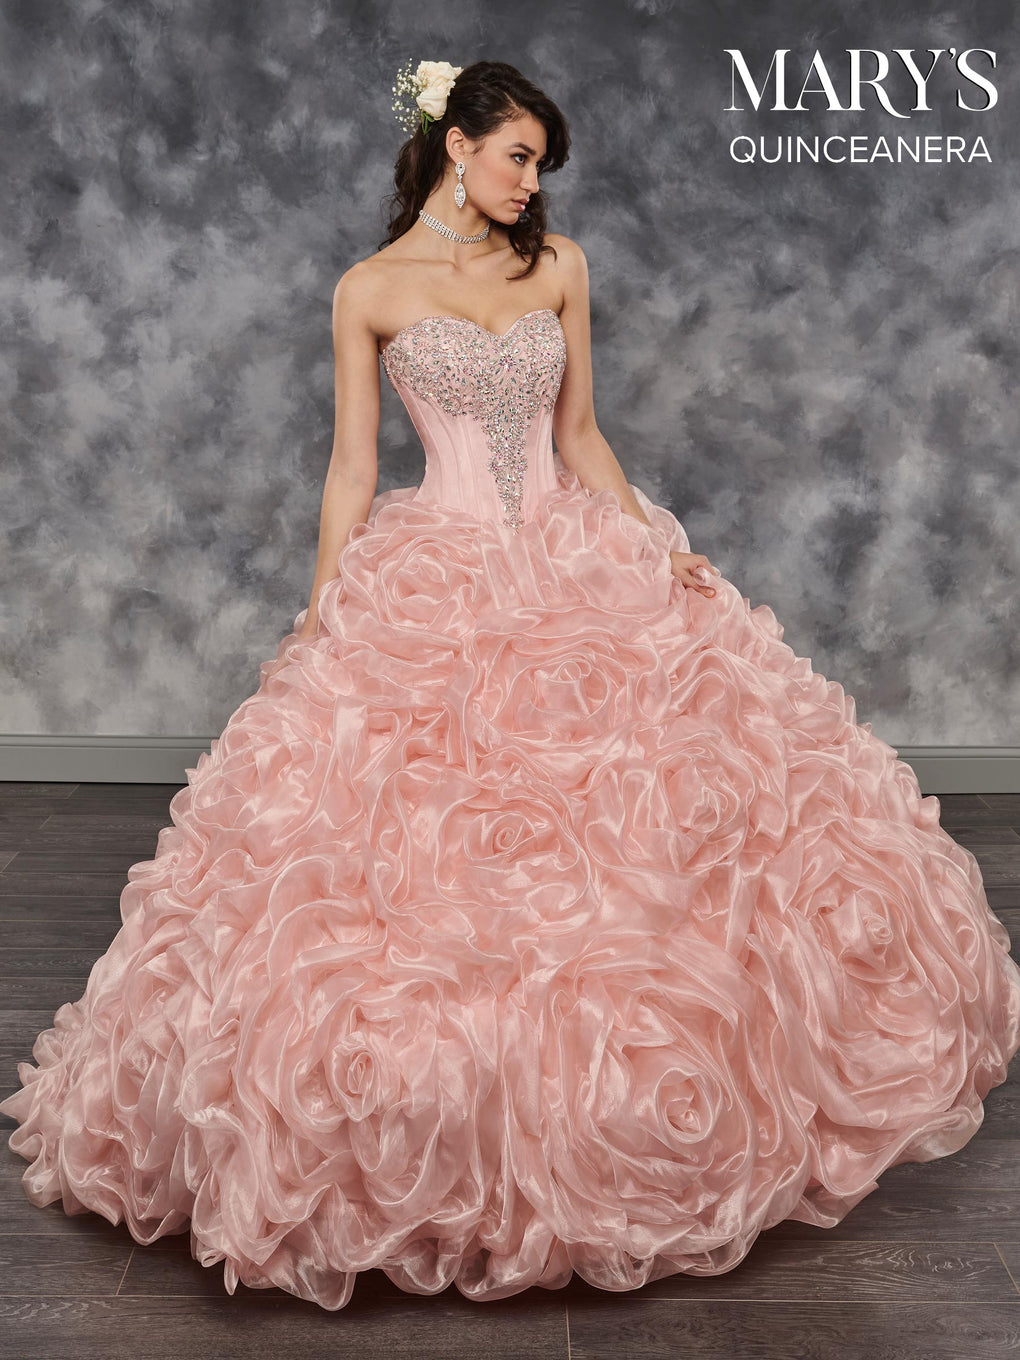 Marys Quinceanera Dresses in Deep Blush, Red, or White Color